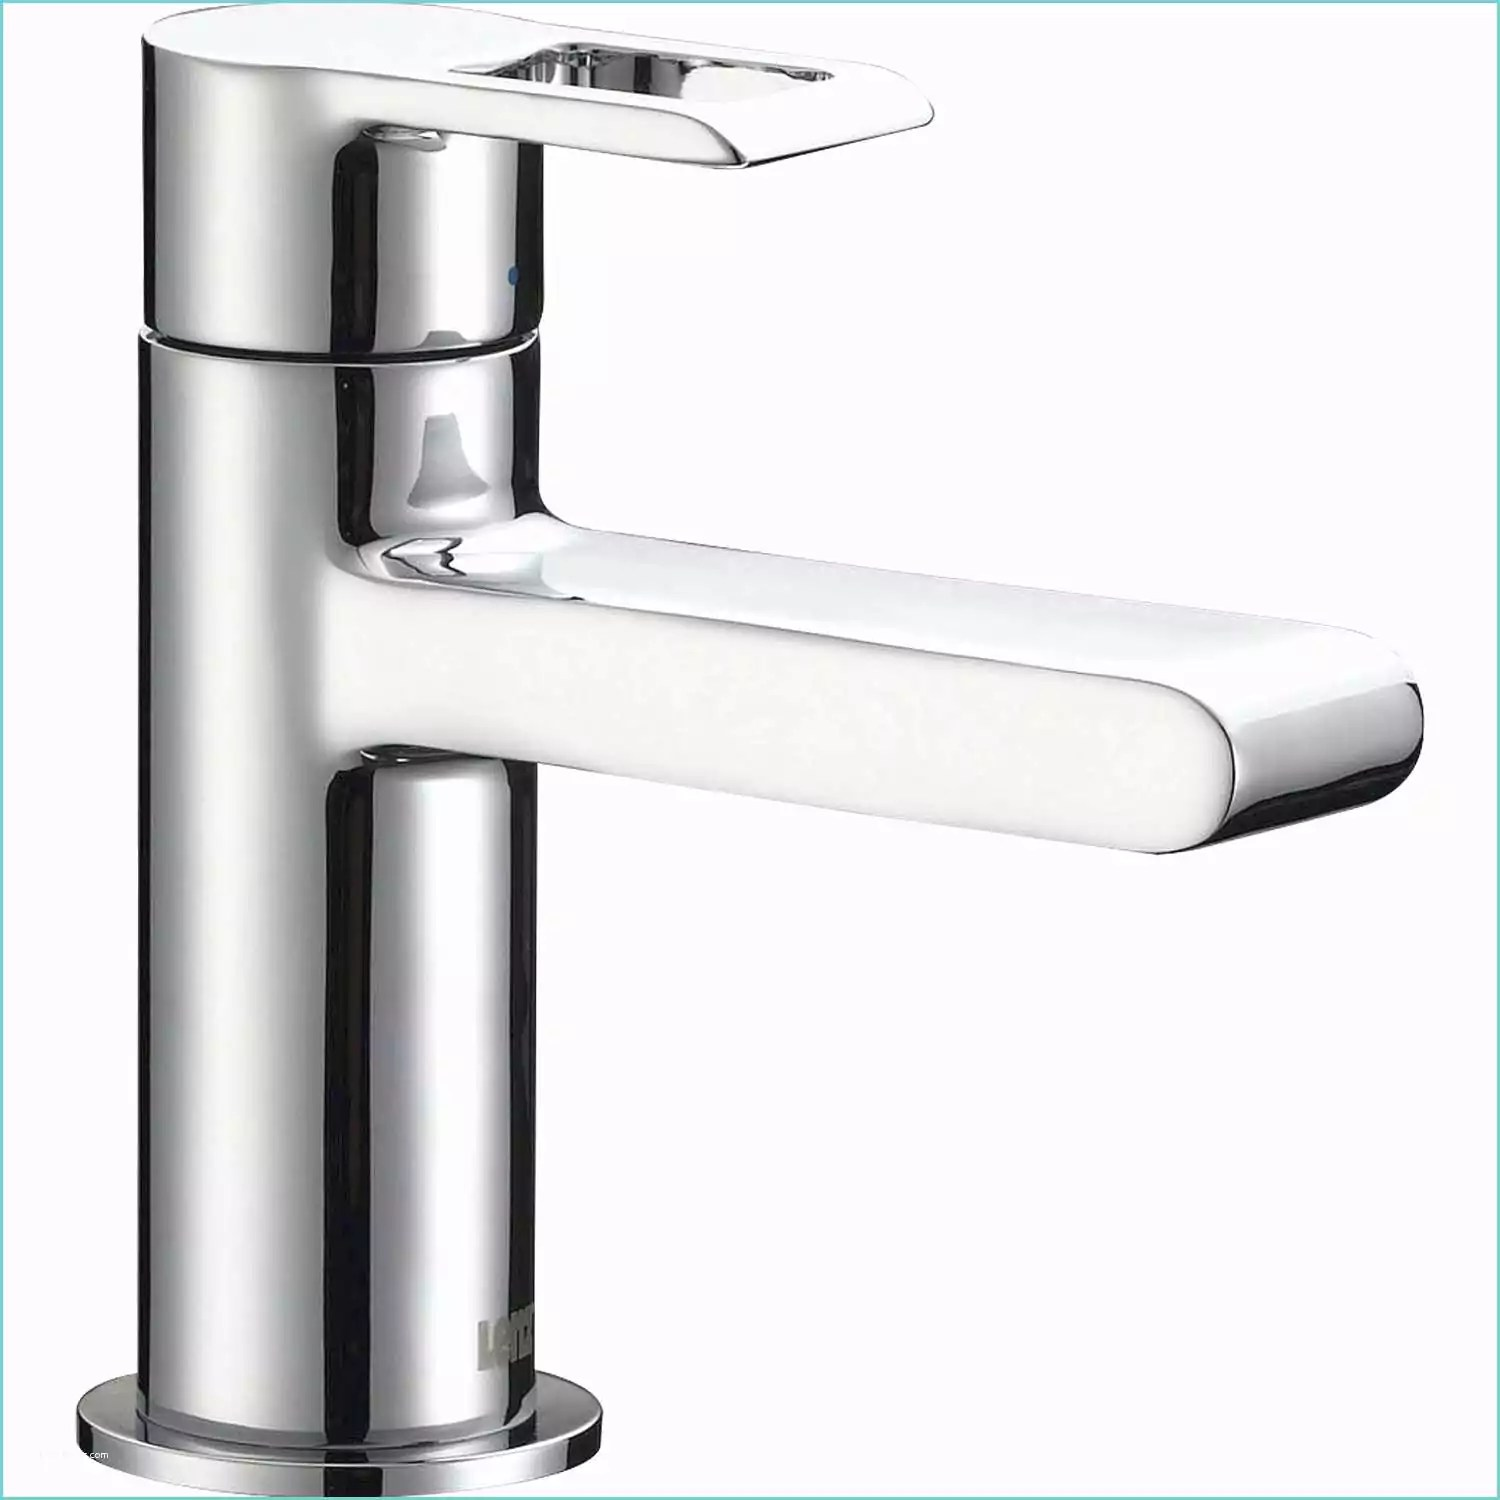 Robinet Sur Baignoire Robinet Baignoire Grohe Leroy Merlin Robinetterie Hansgrohe Salle